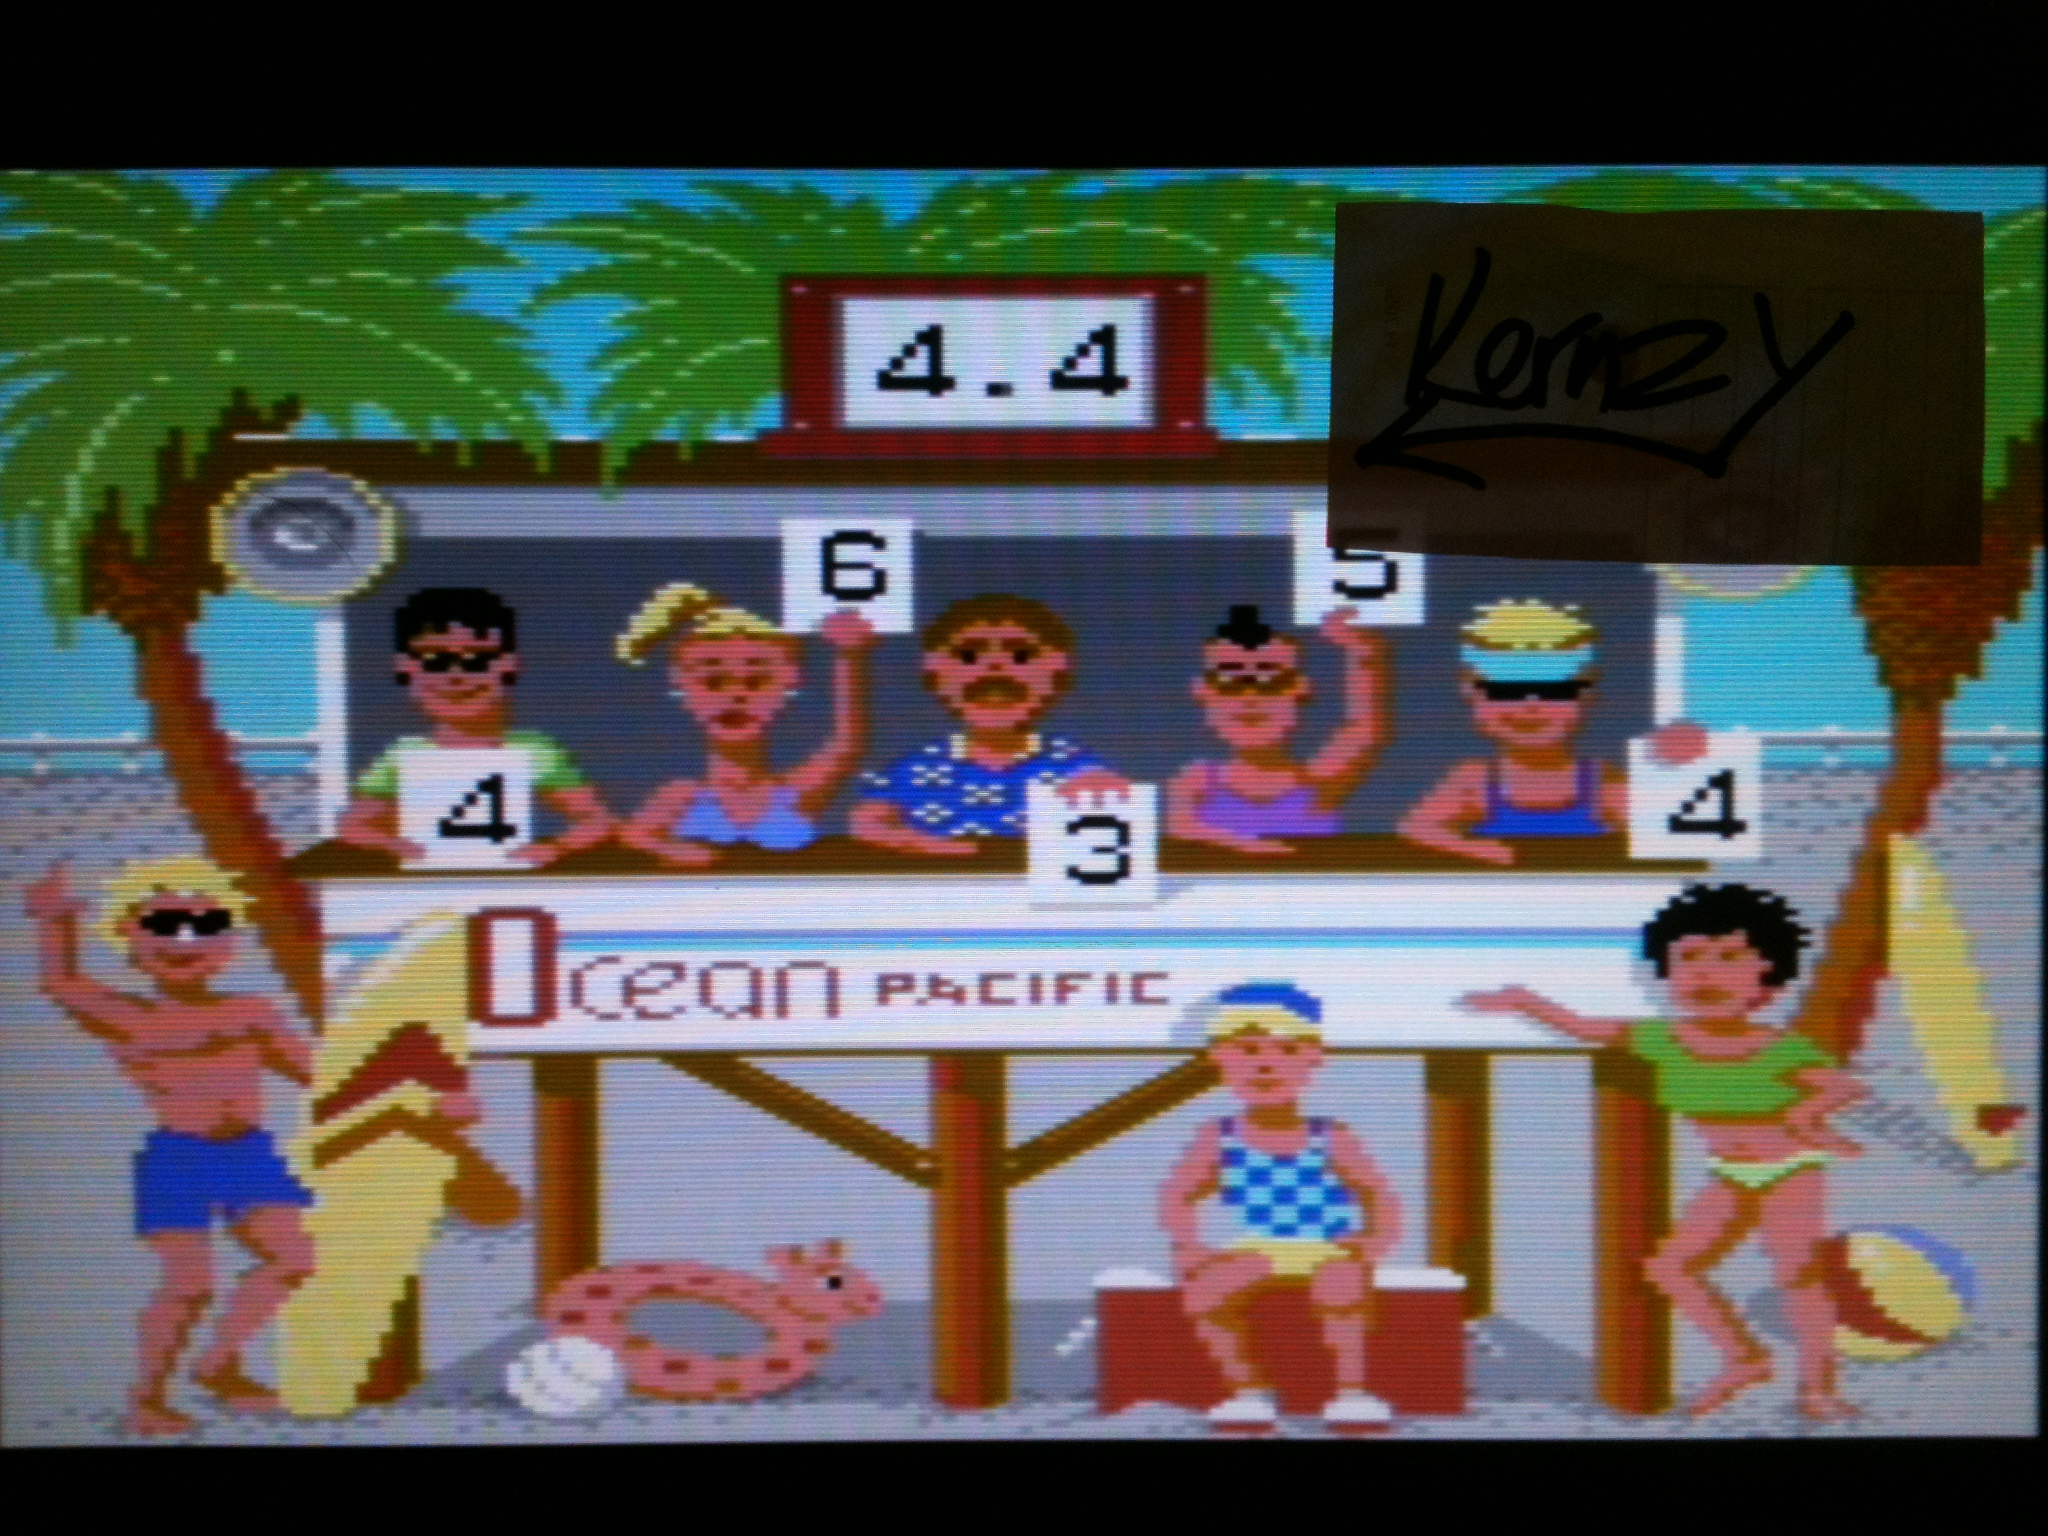 kernzy: California Games: Surfing (Commodore 64 Emulated) 4 points on 2015-05-08 15:36:28